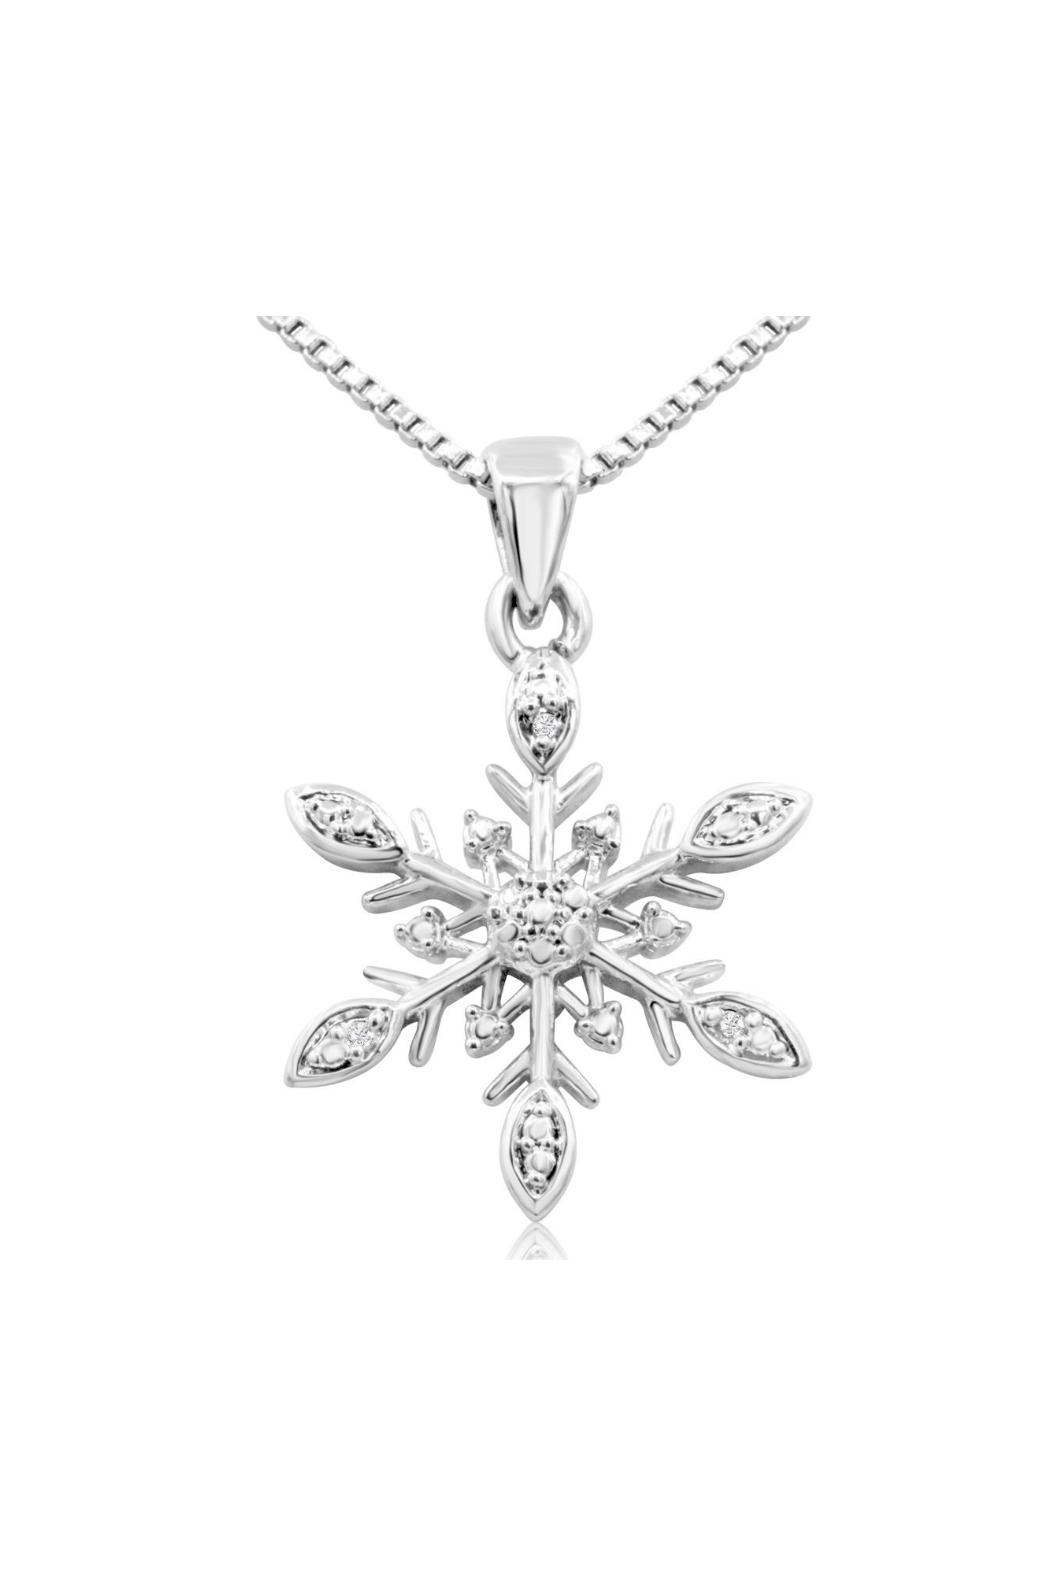 progressive sophie harley products snowflake london necklace